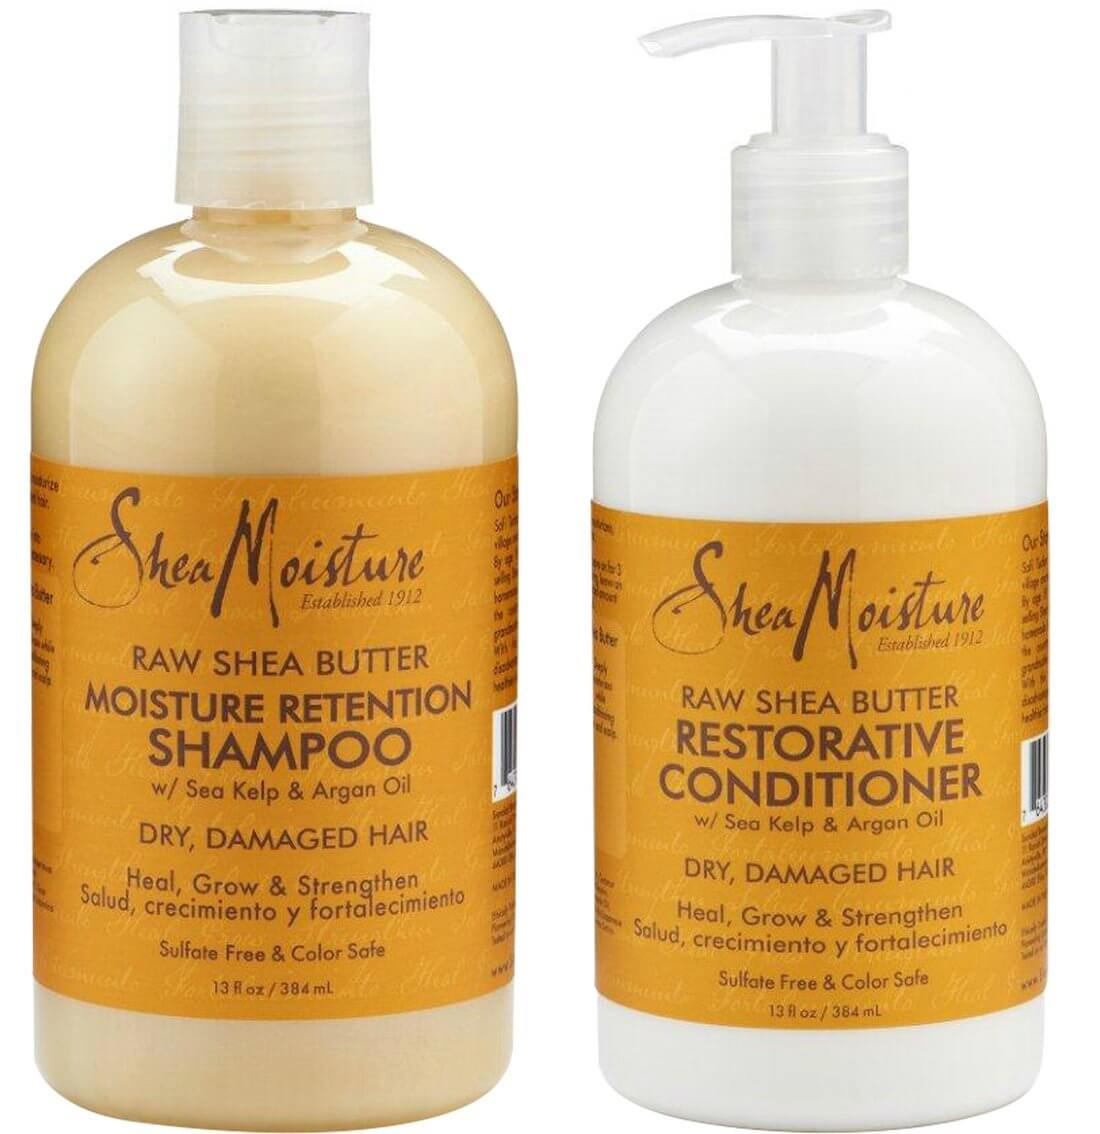 Best shampoos and conditioners for hair extensions shea moisture raw shea butter moisture retention shampoo and restorative conditioner pmusecretfo Choice Image